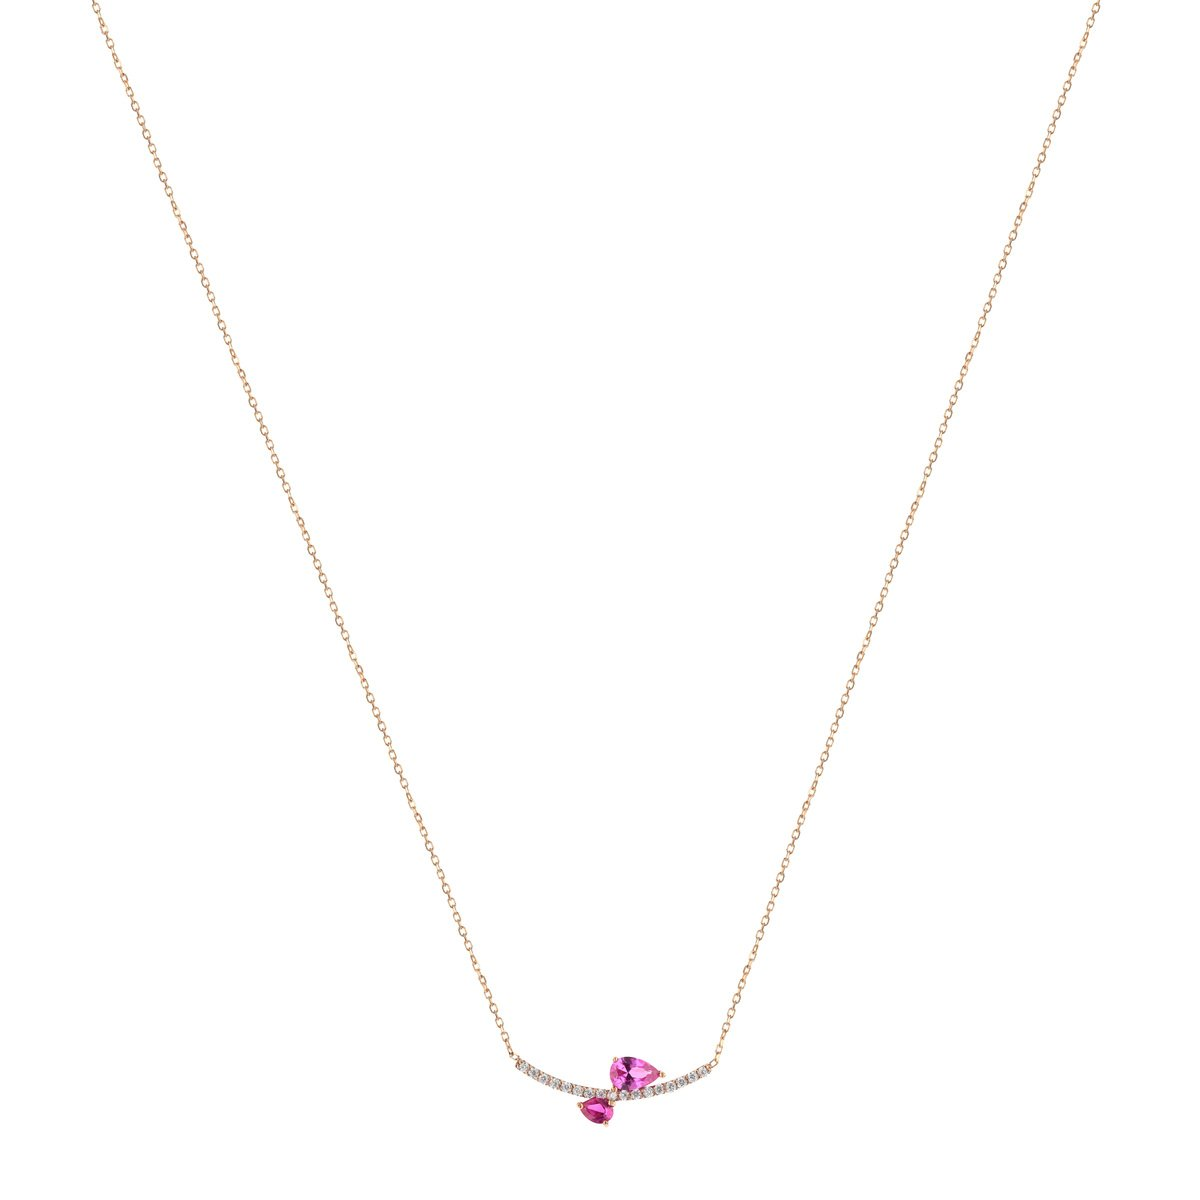 Collier or 375 rose zirconia - vue V1